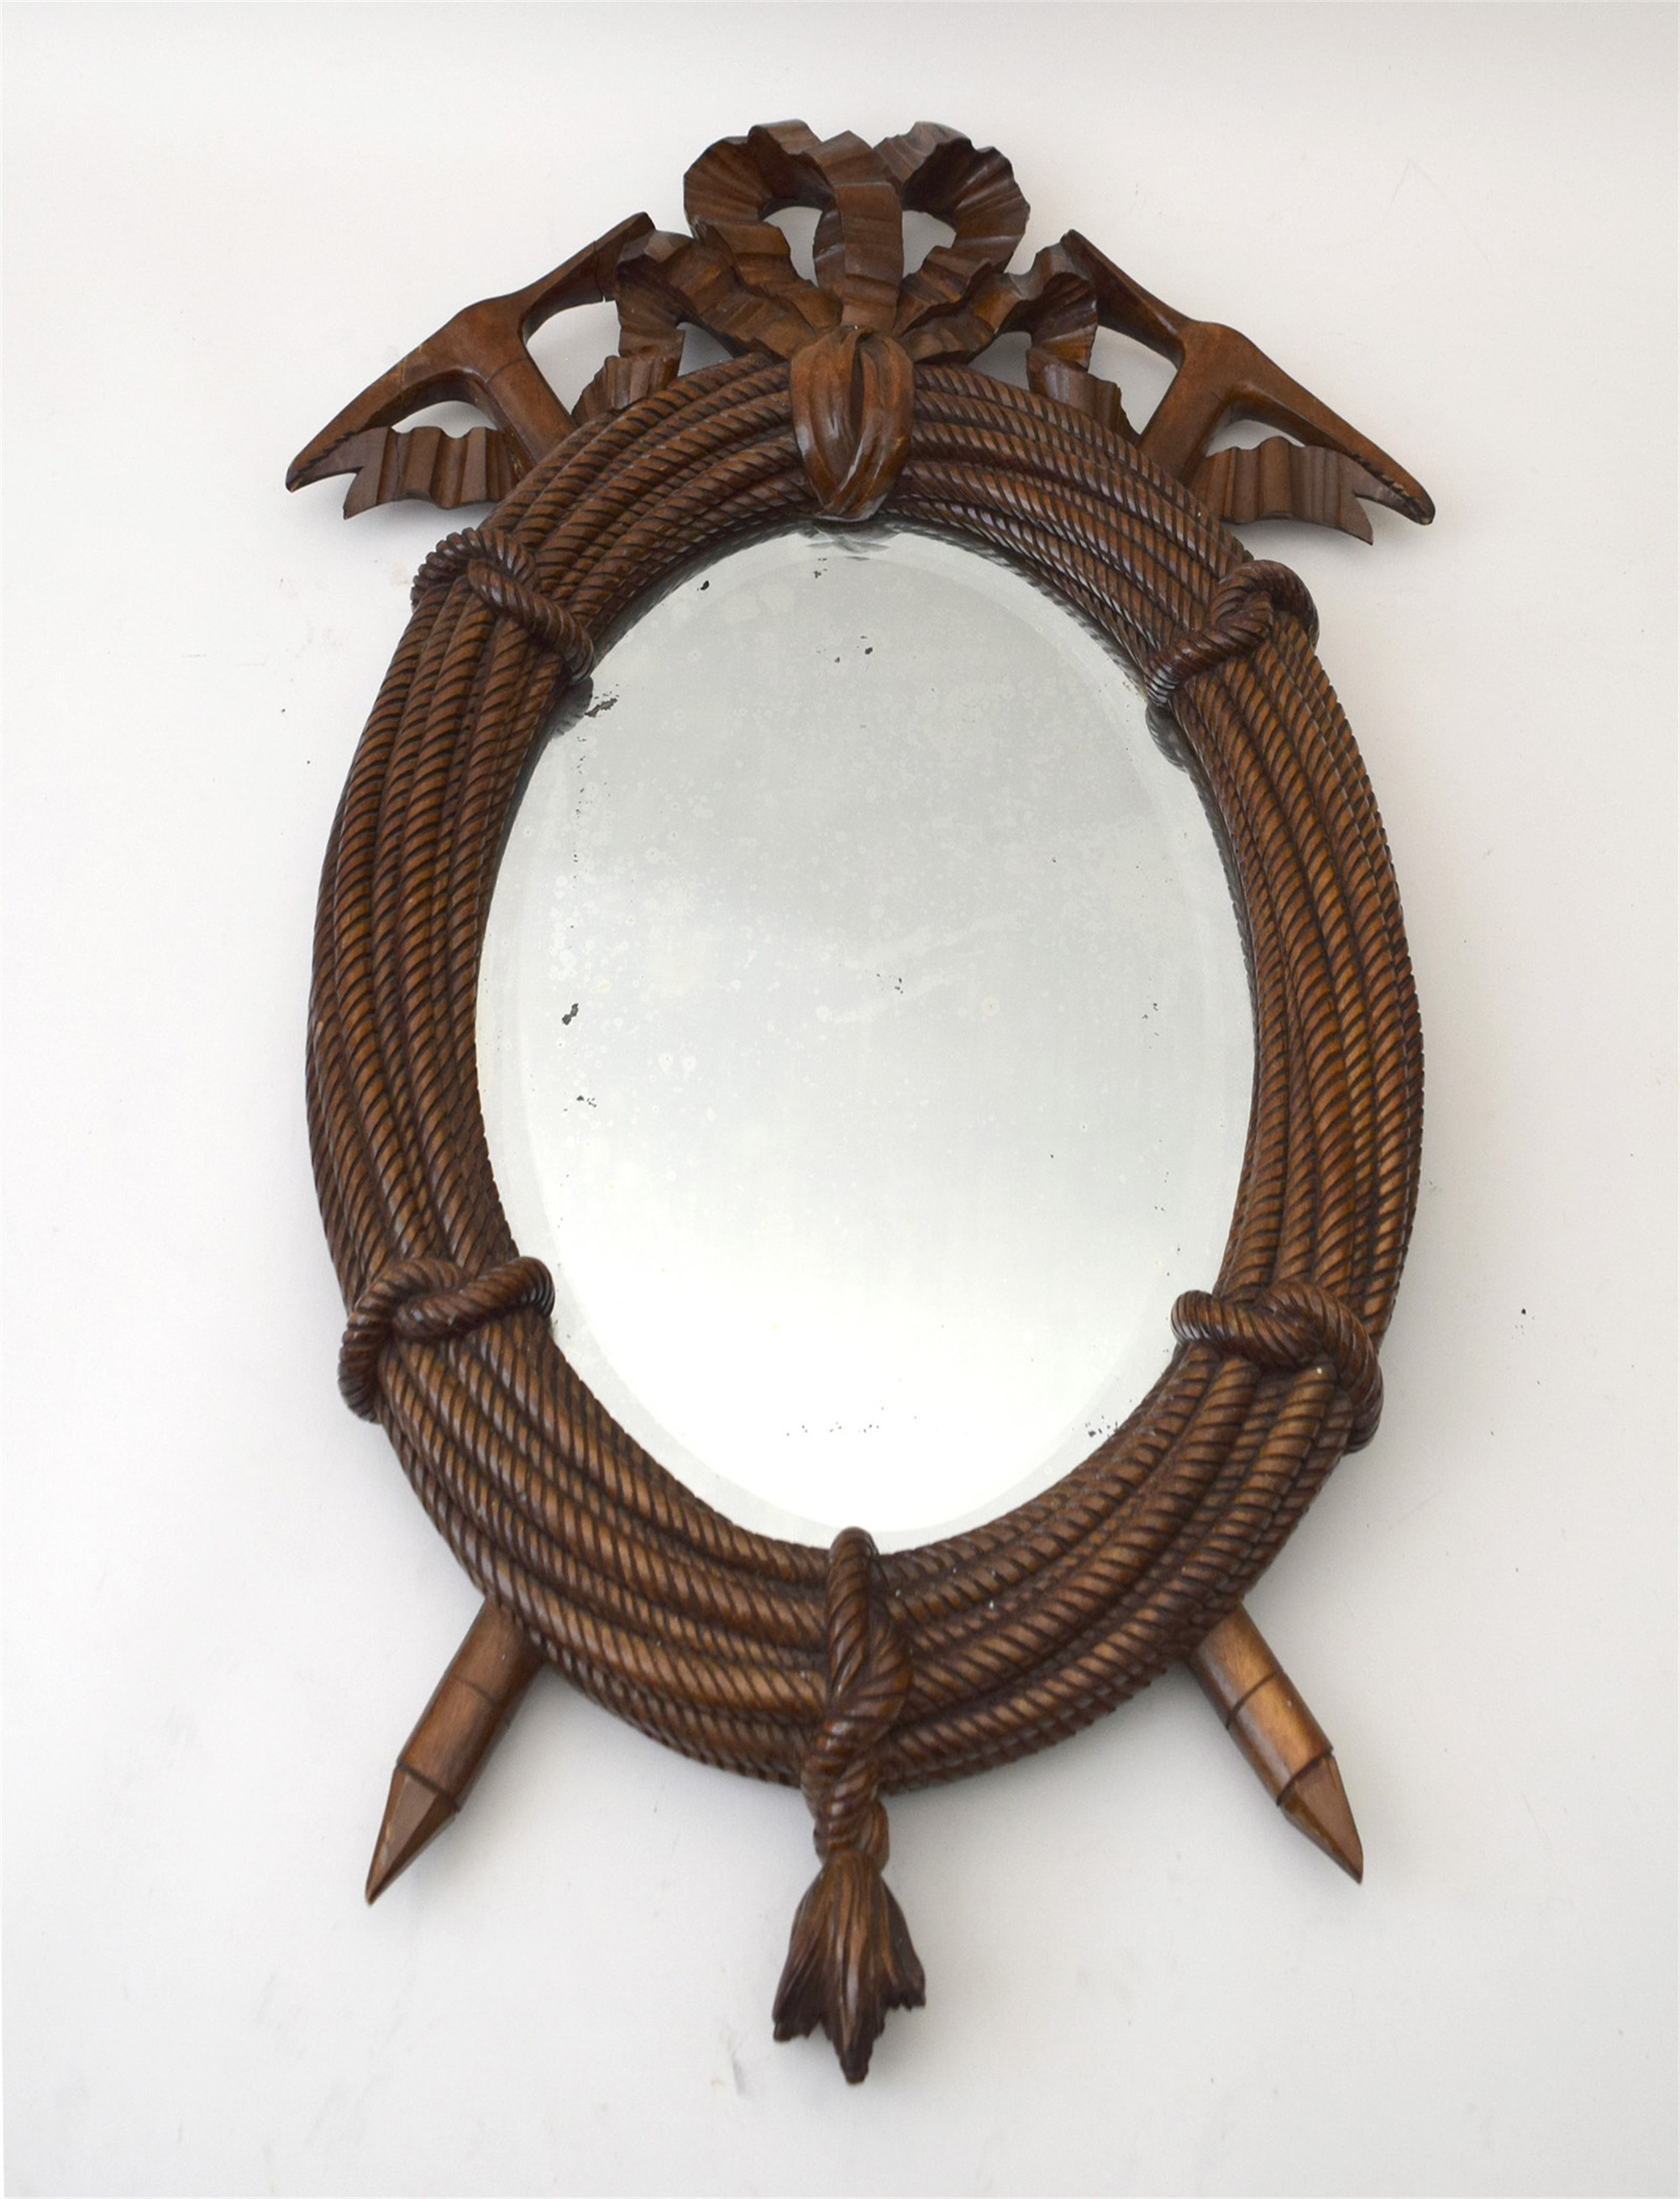 SMALL OVAL MIRROR CARVED WITH BOW-TIED COILED ROPE AND CROSSED PICK AXES